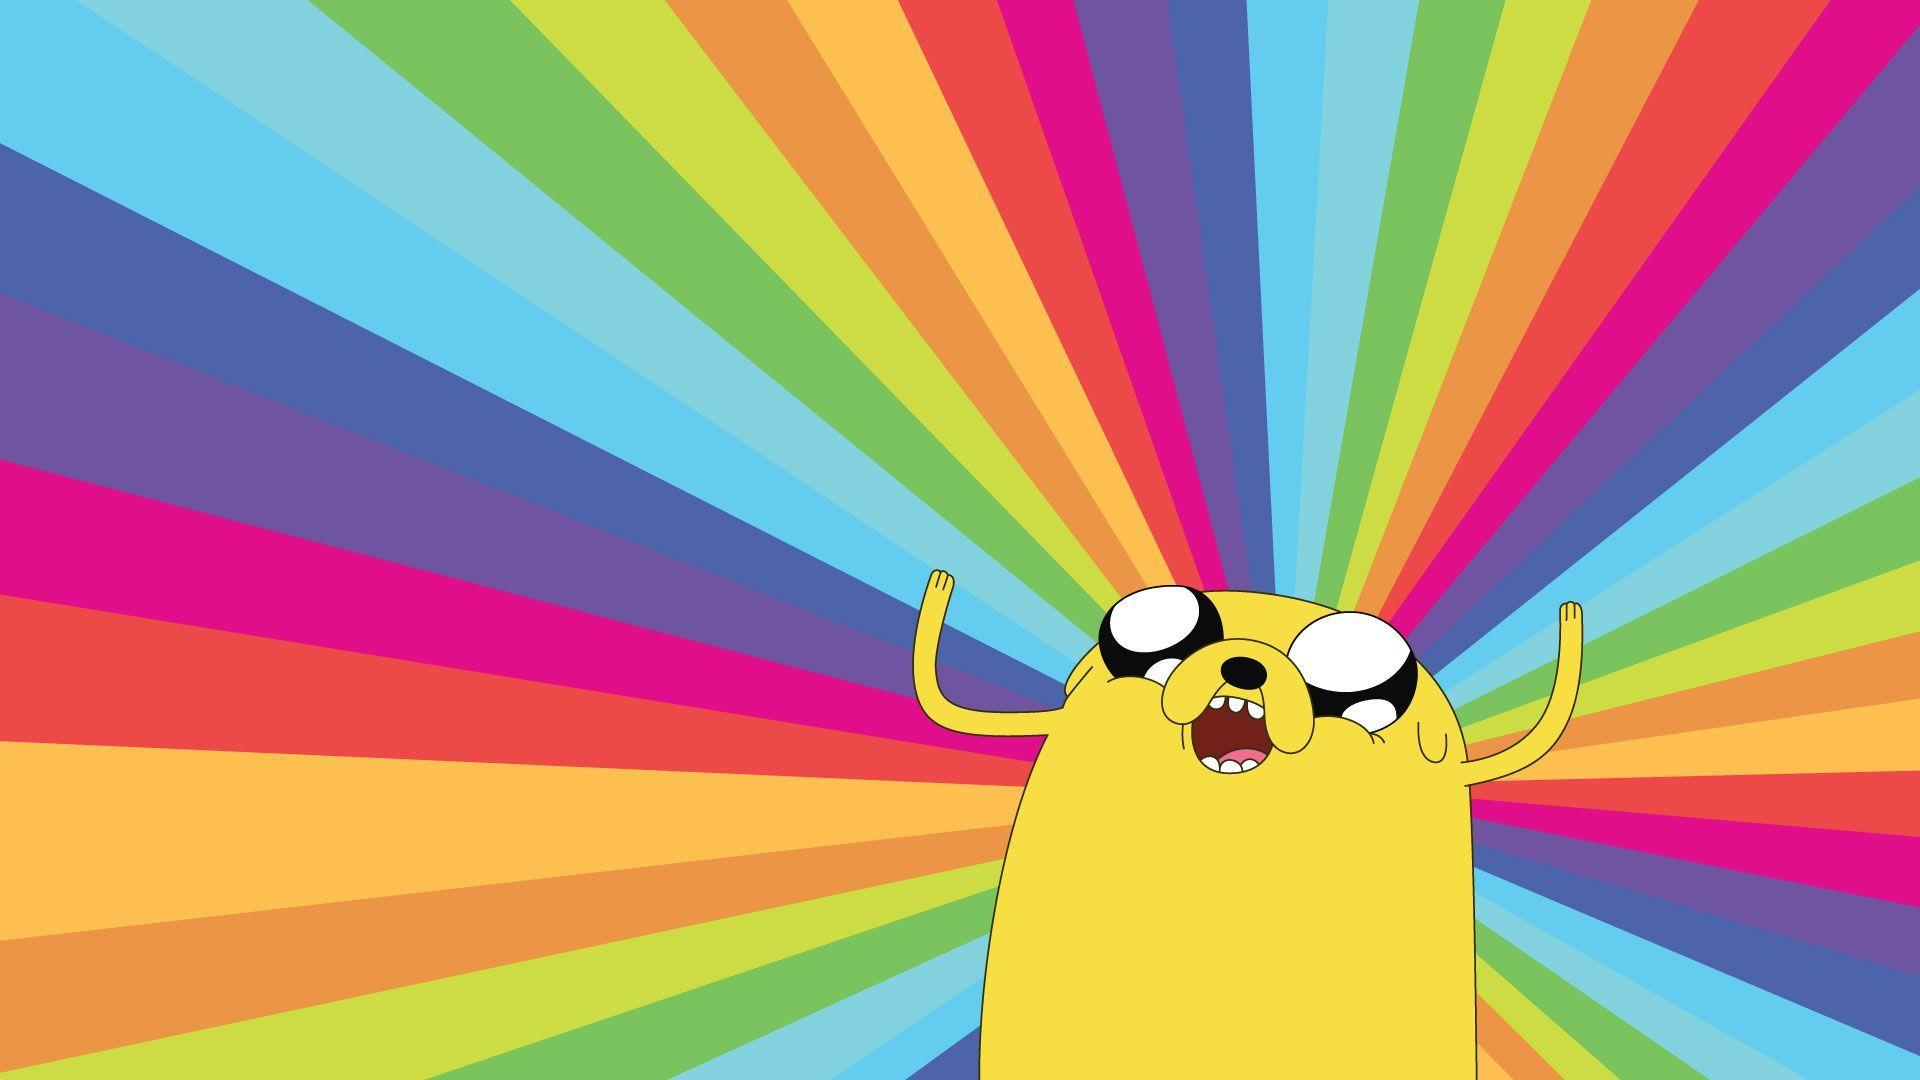 Excellent Adventure Time Wallpapers Hd Iphone 1920x1080PX .